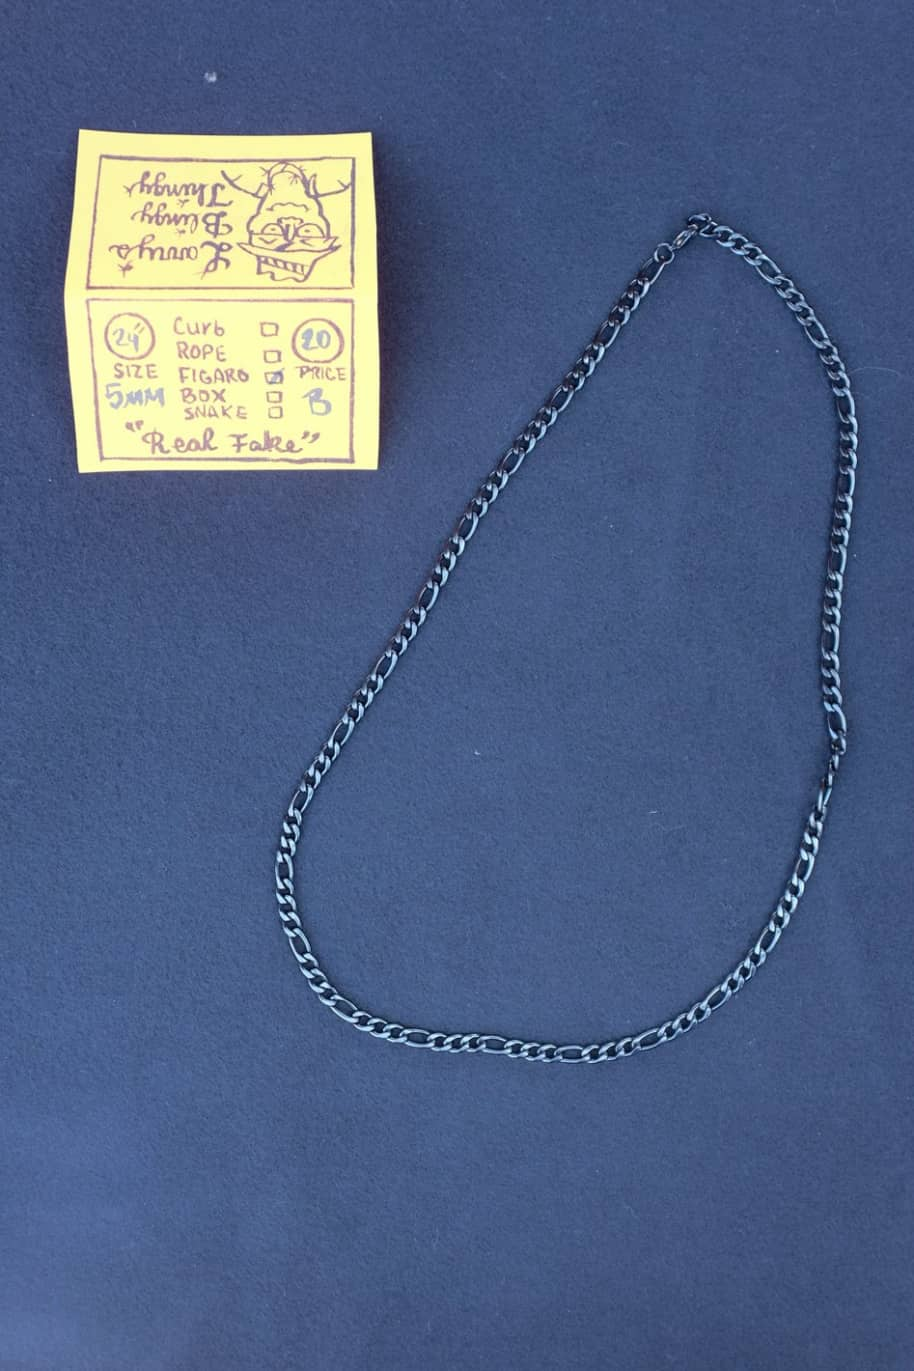 Figaro Necklace 24 inch 5 mm - Black | Jewellery by Larry's Blingy Thingy 1